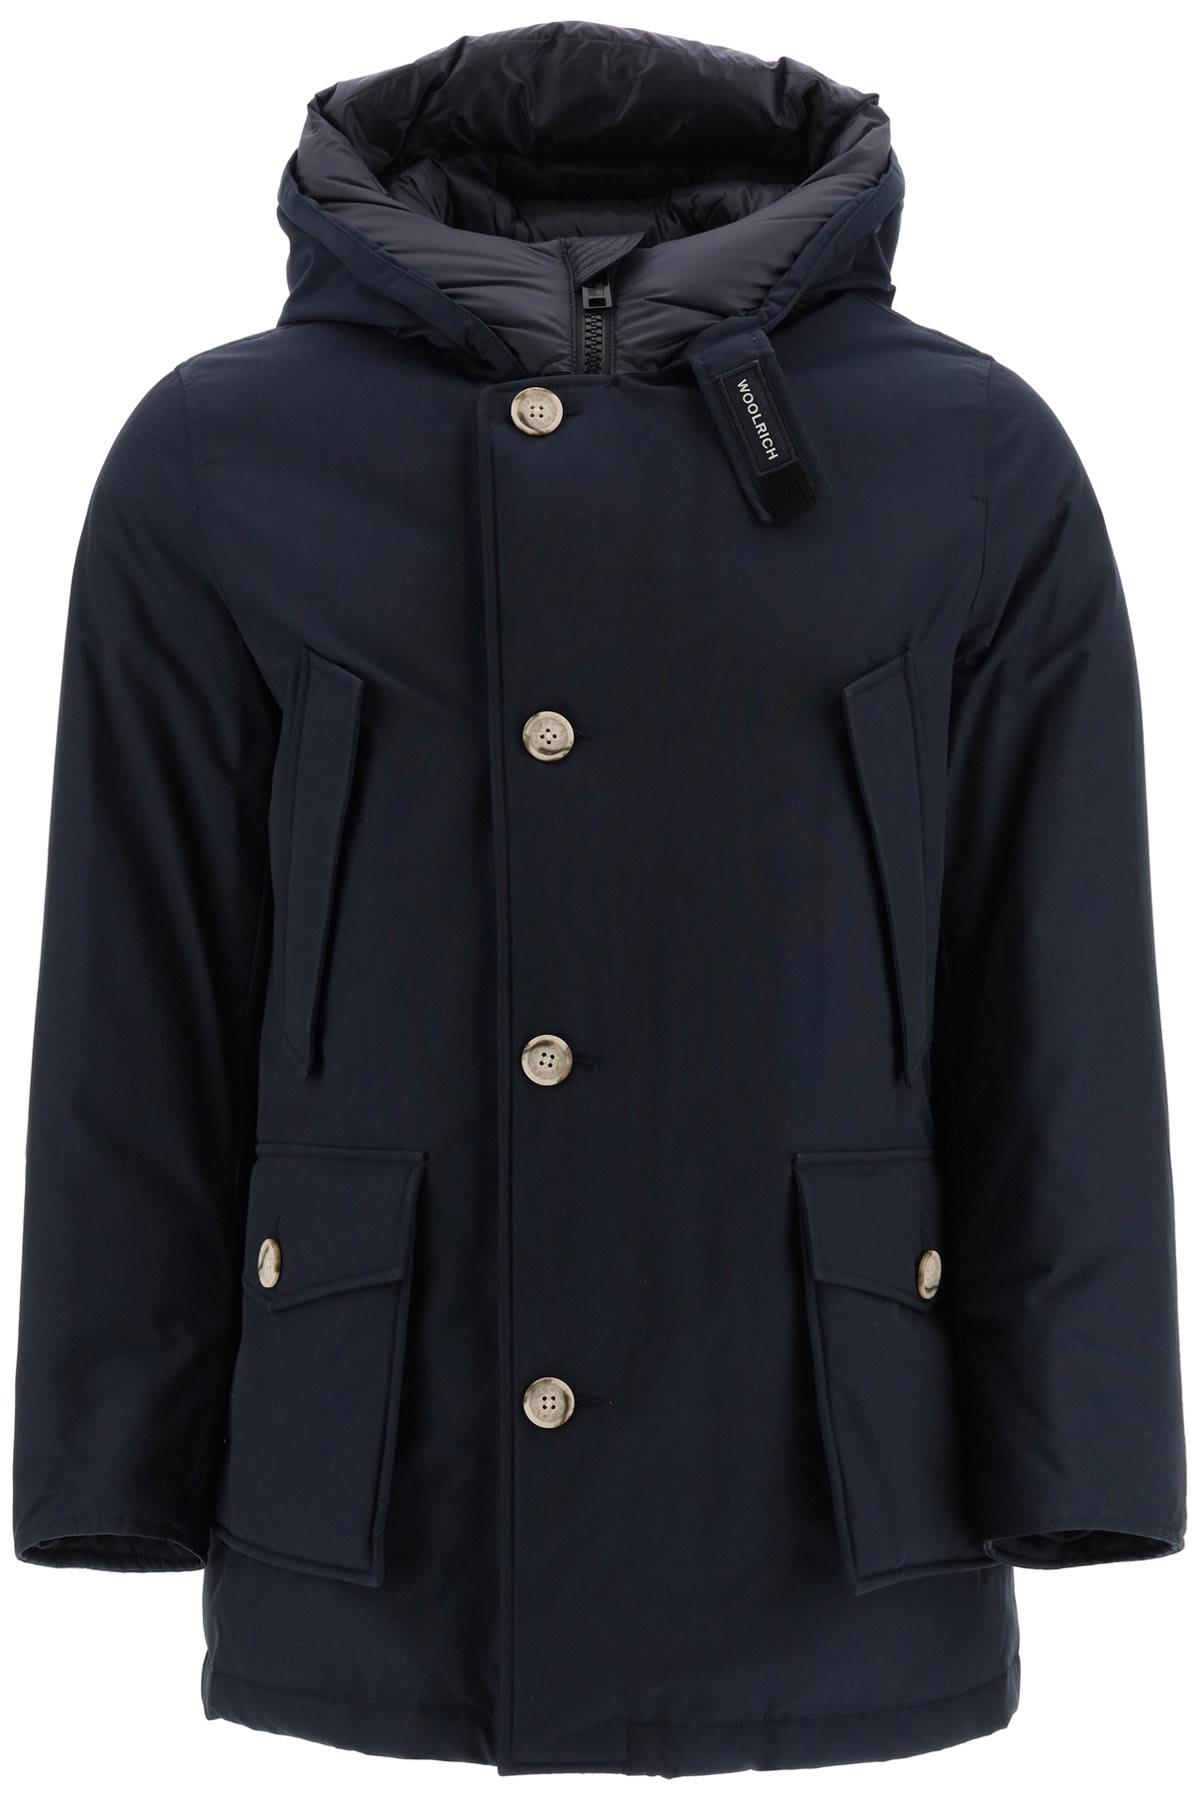 Woolrich ARTIC HOODED PARKA